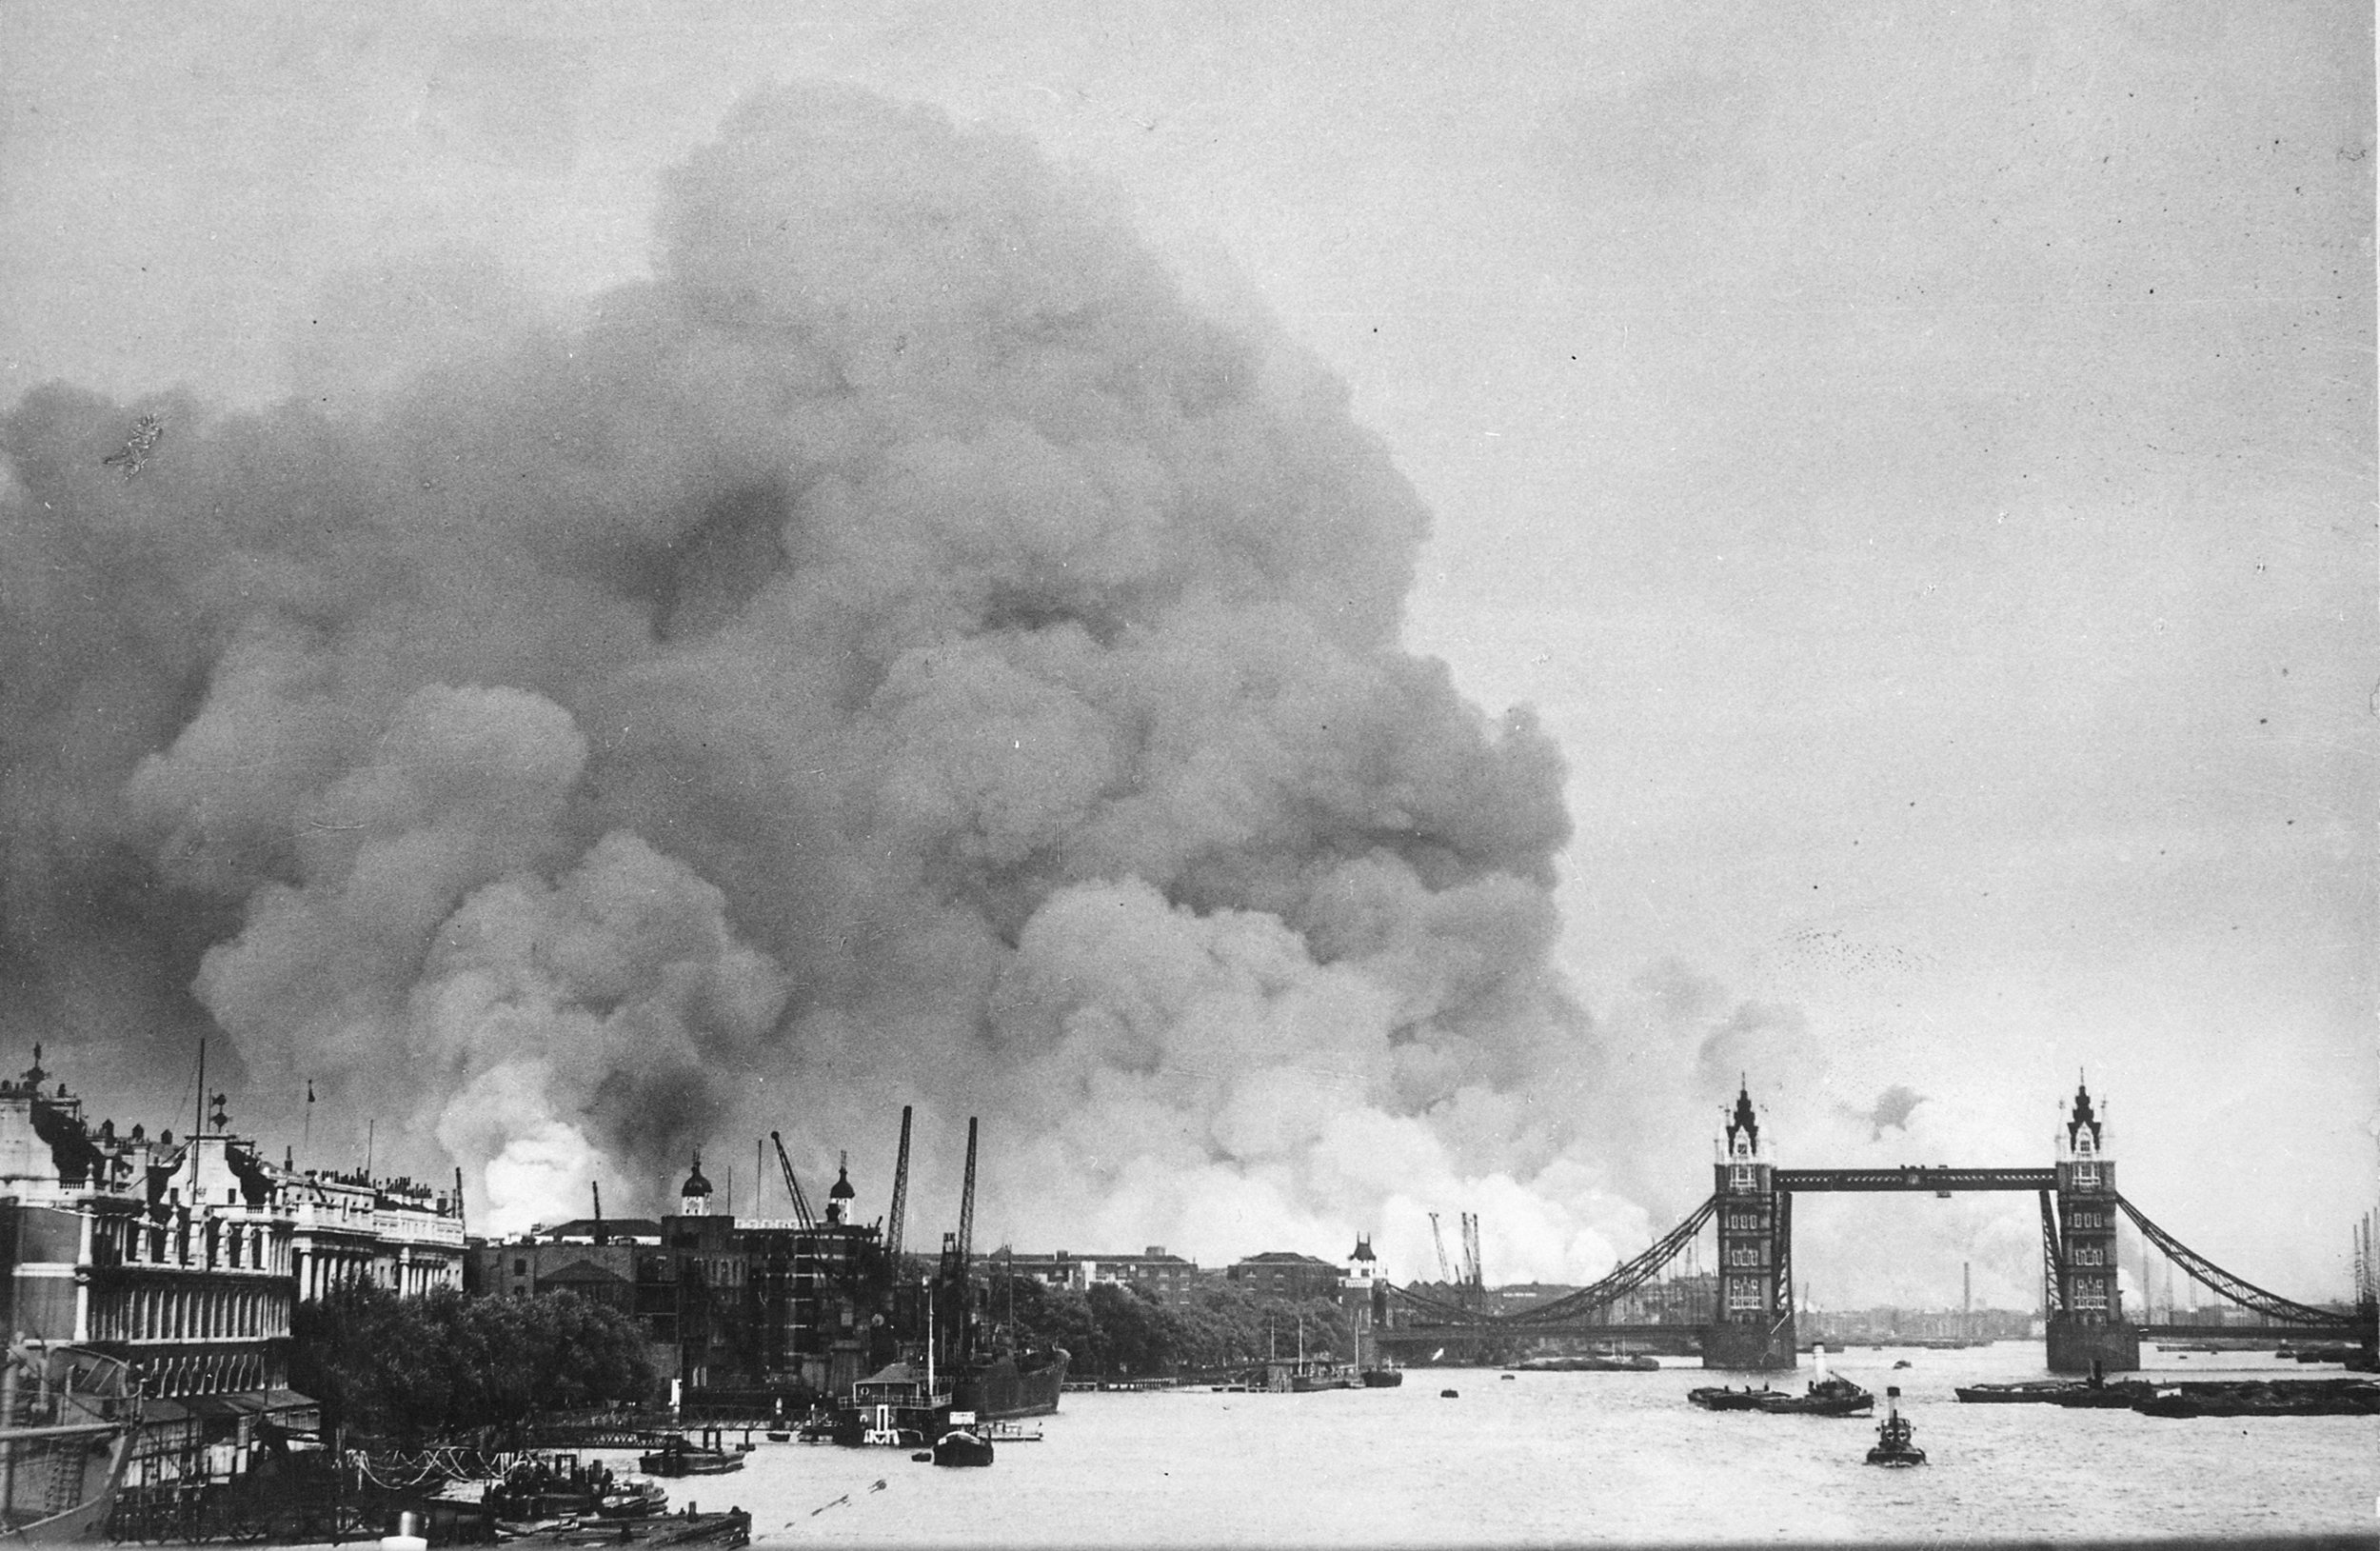 London fires caused by Nazi bombing raids in 1940. By New York Times Paris Bureau Collection. - This media is available in the holdings of the National Archives and Records Administration, cataloged under the National Archives Identifier (NAID) 541917., Public Domain,  https://commons.wikimedia.org/w/index.php?curid=3243510